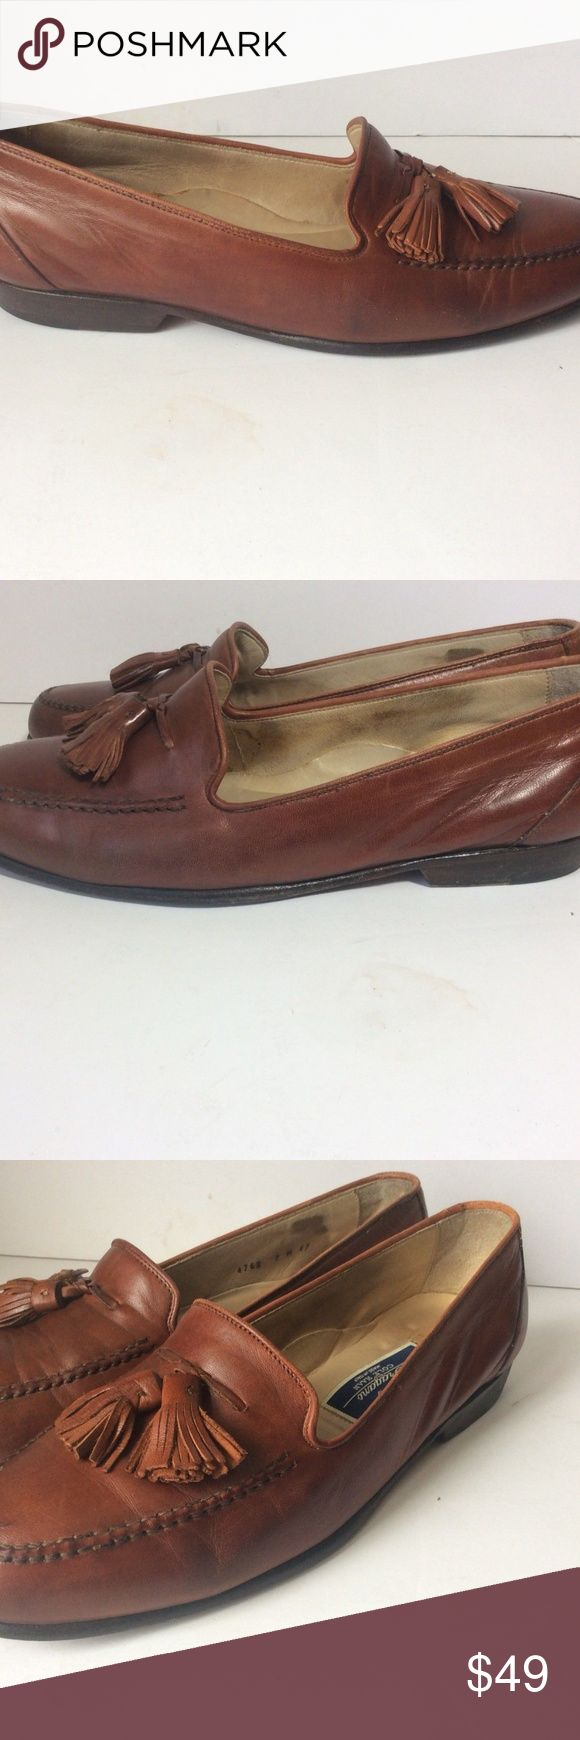 Bragano by Cole Haan Mens Shoes Brown Leather Bragano by Cole Haan Mens Shoes Brown Leather Tassel Loafers - Mens Size 7M Cole Haan Shoes Loafers & Slip-Ons